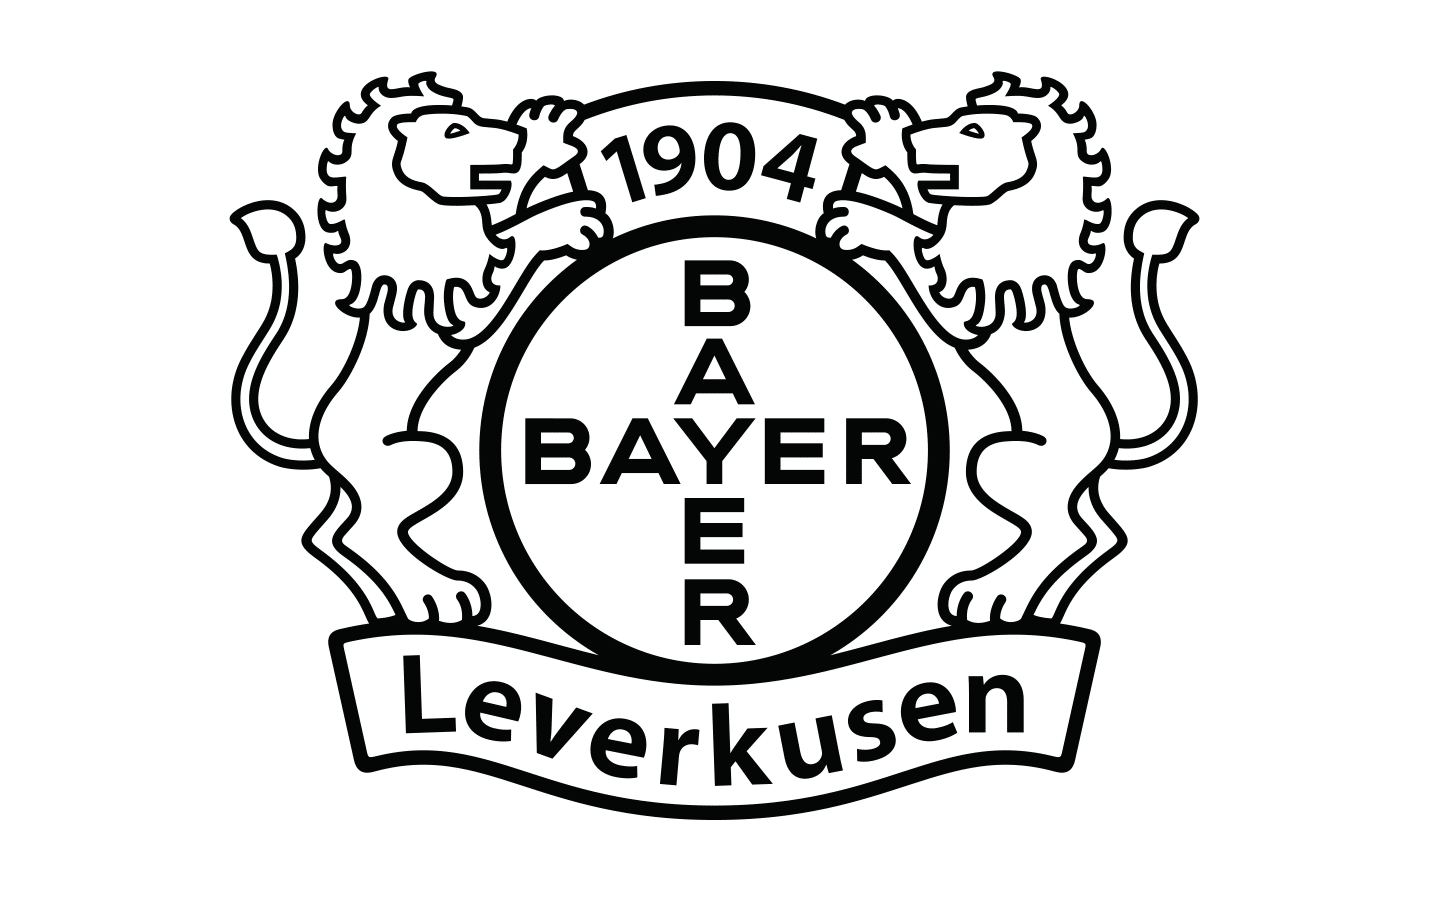 staygolden-Bayer04